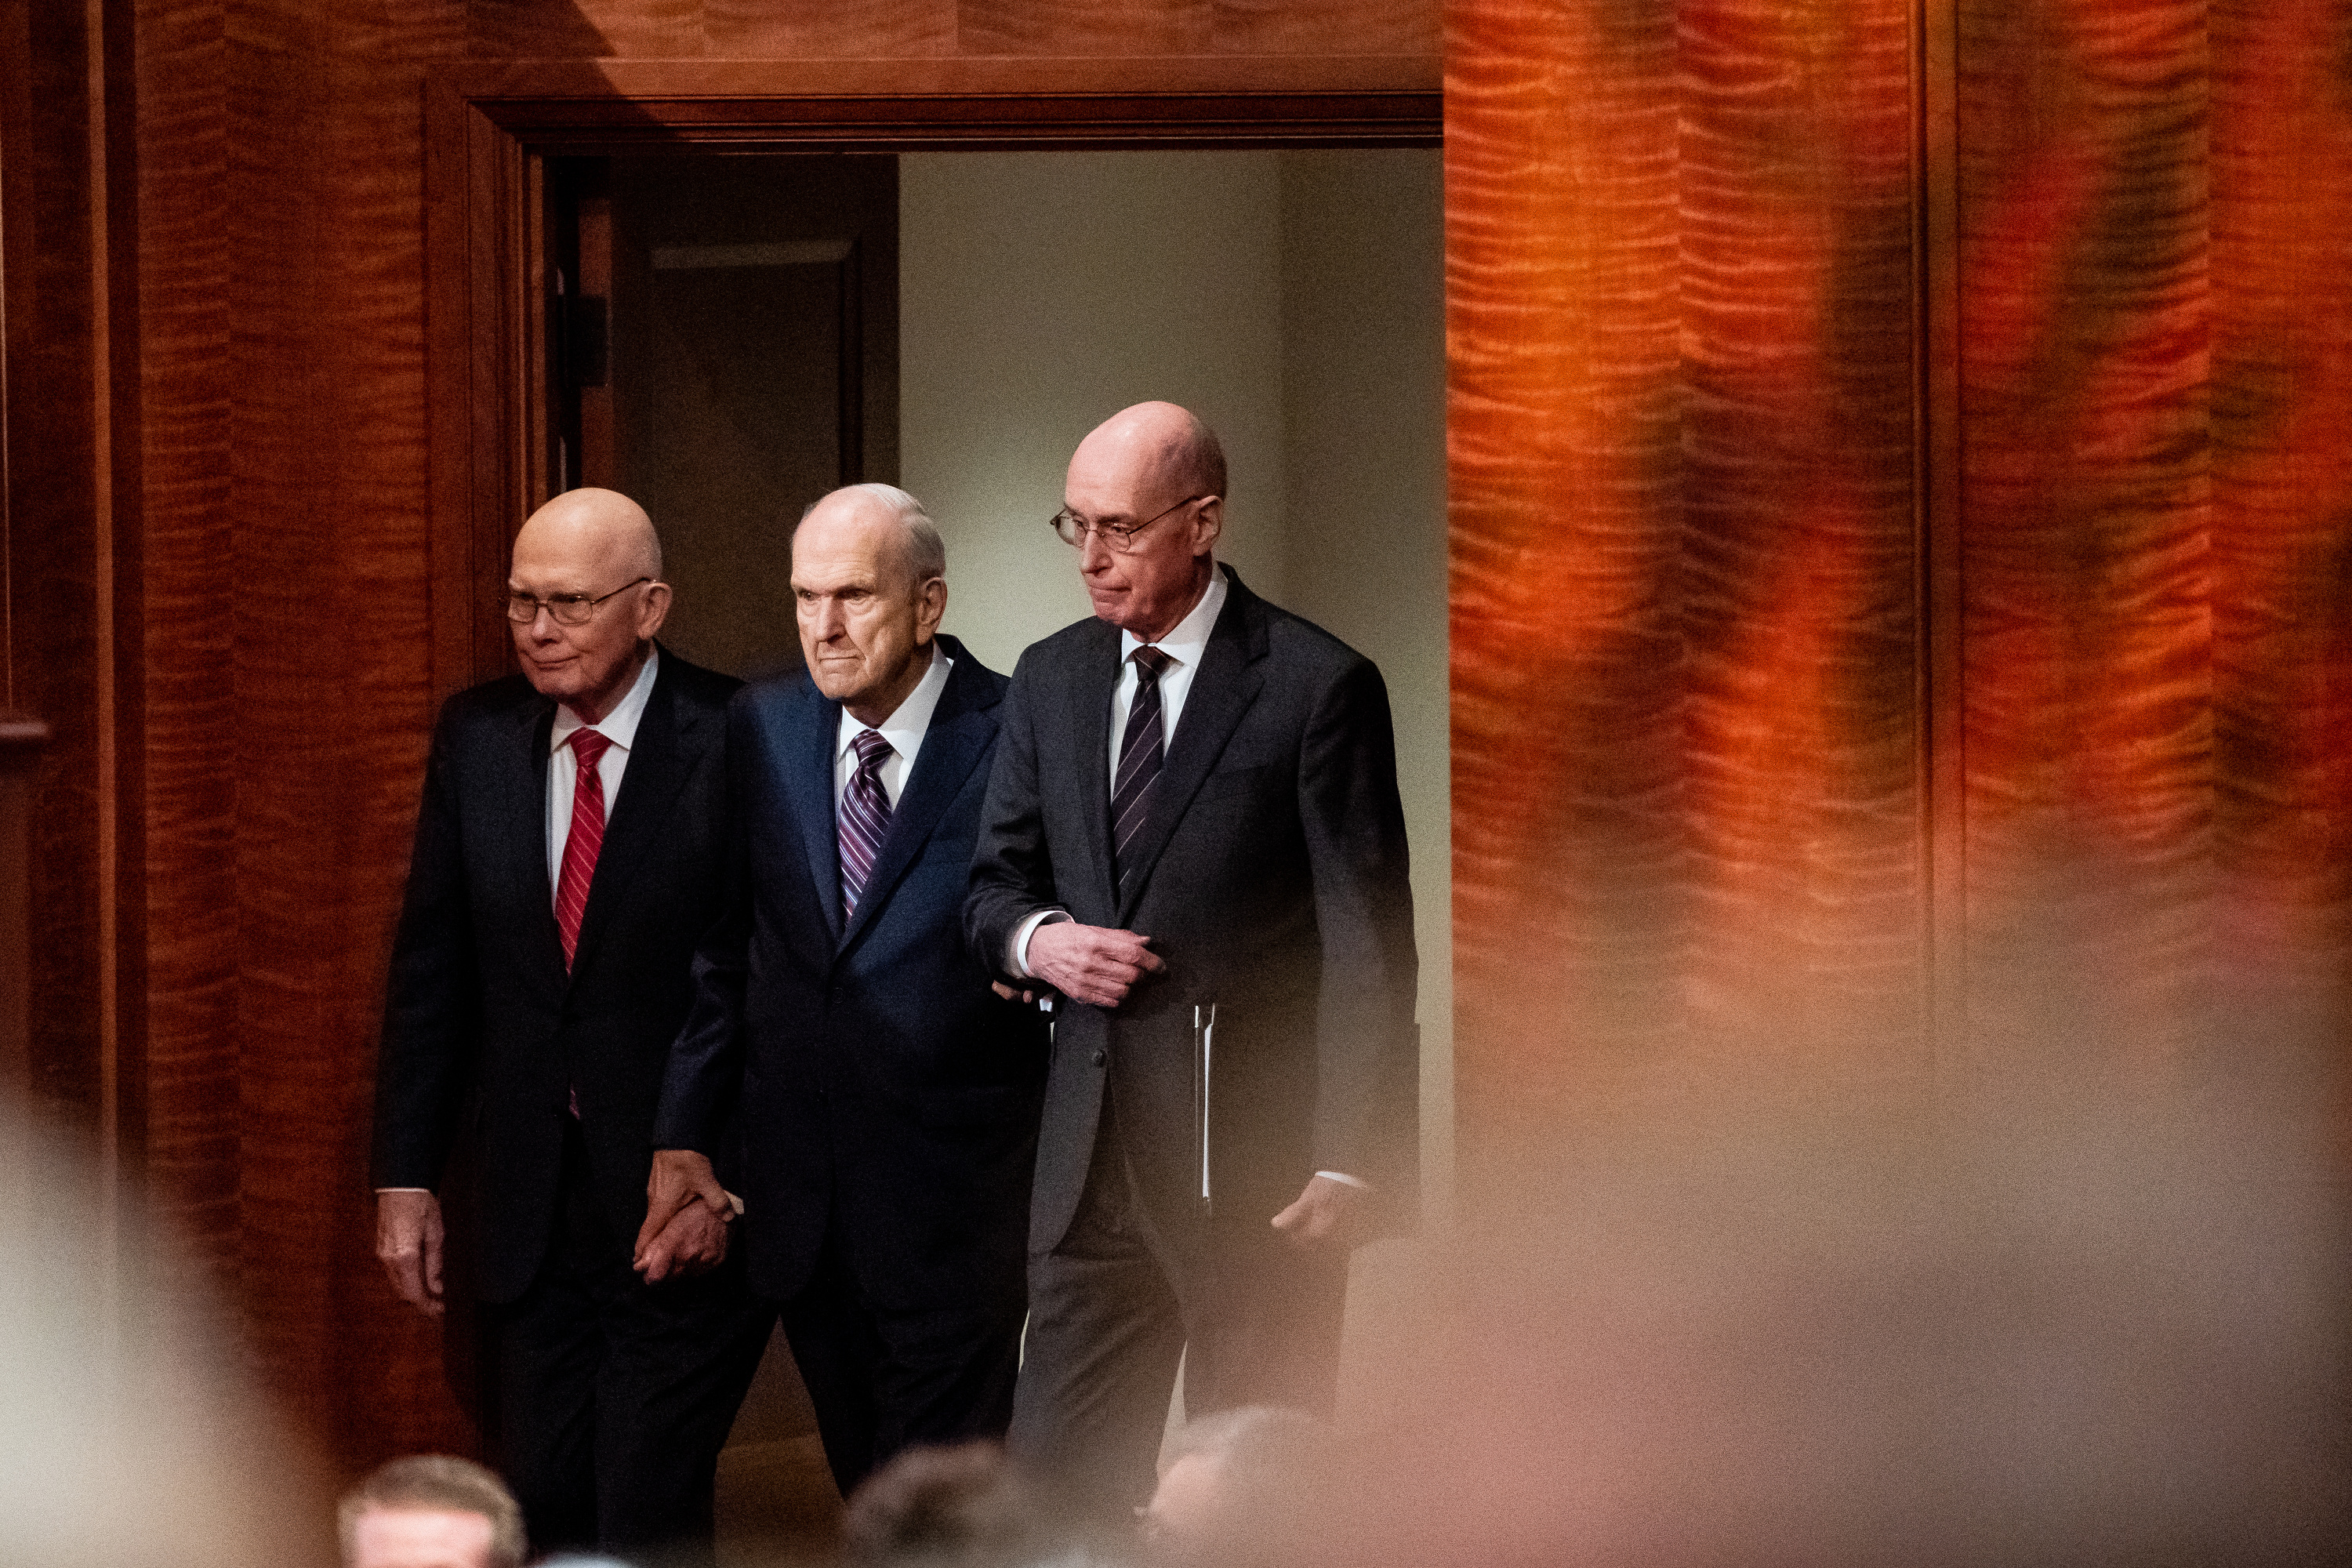 President Russell M. Nelson, center, President Dallin H. Oaks, first counselor in the First Presidency, left, and President Henry B. Eyring, second counselor in the First Presidency, right, enter together at the start of the Saturday morning session of the 189th Semiannual General Conference of The Church of Jesus Christ of Latter-day Saints at the Conference Center in Salt Lake City on Saturday, Oct. 5, 2019.